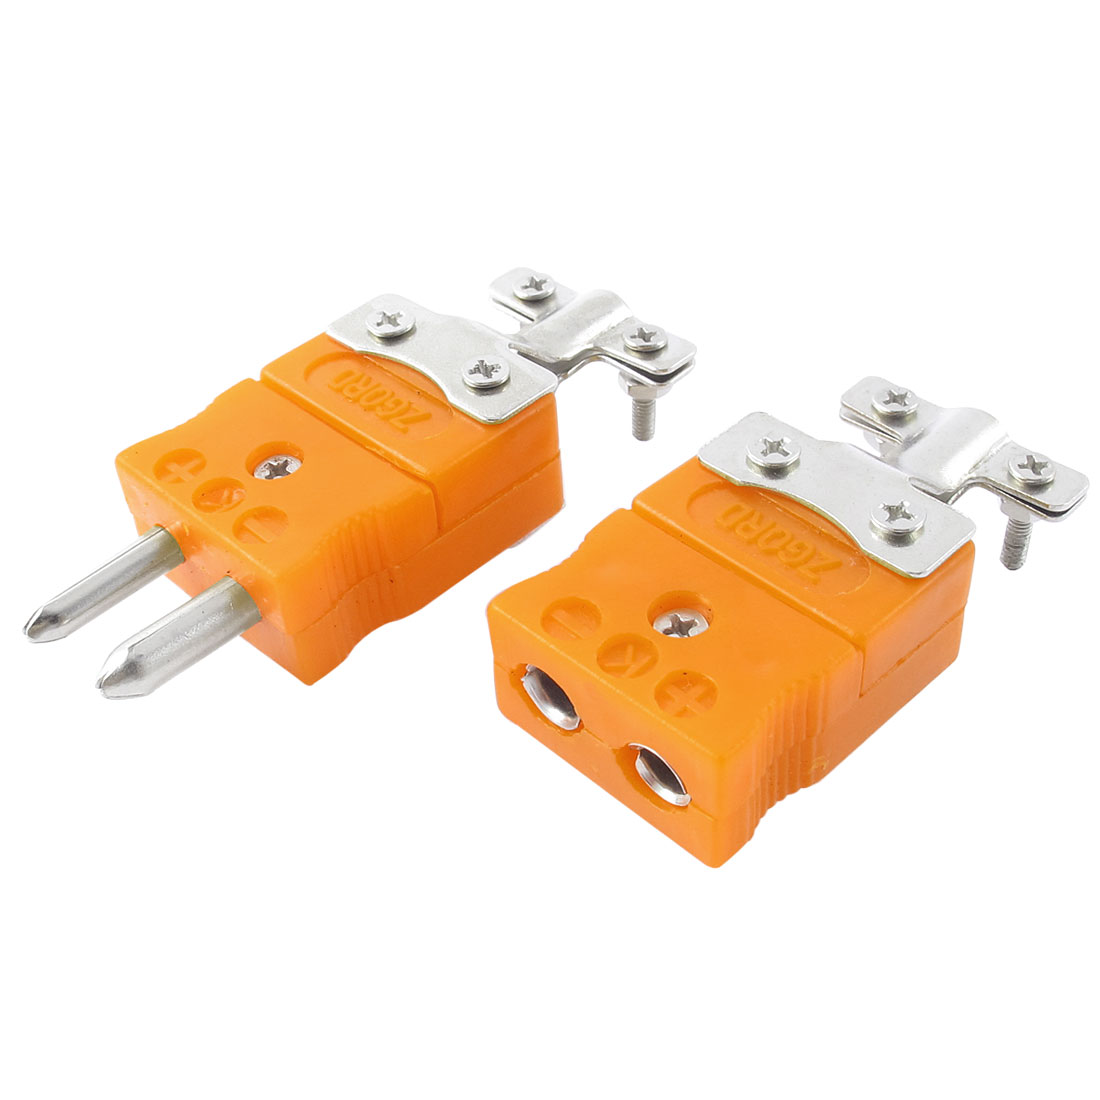 2 Pcs Male to Female Plugs K Type Thermocouple Connector